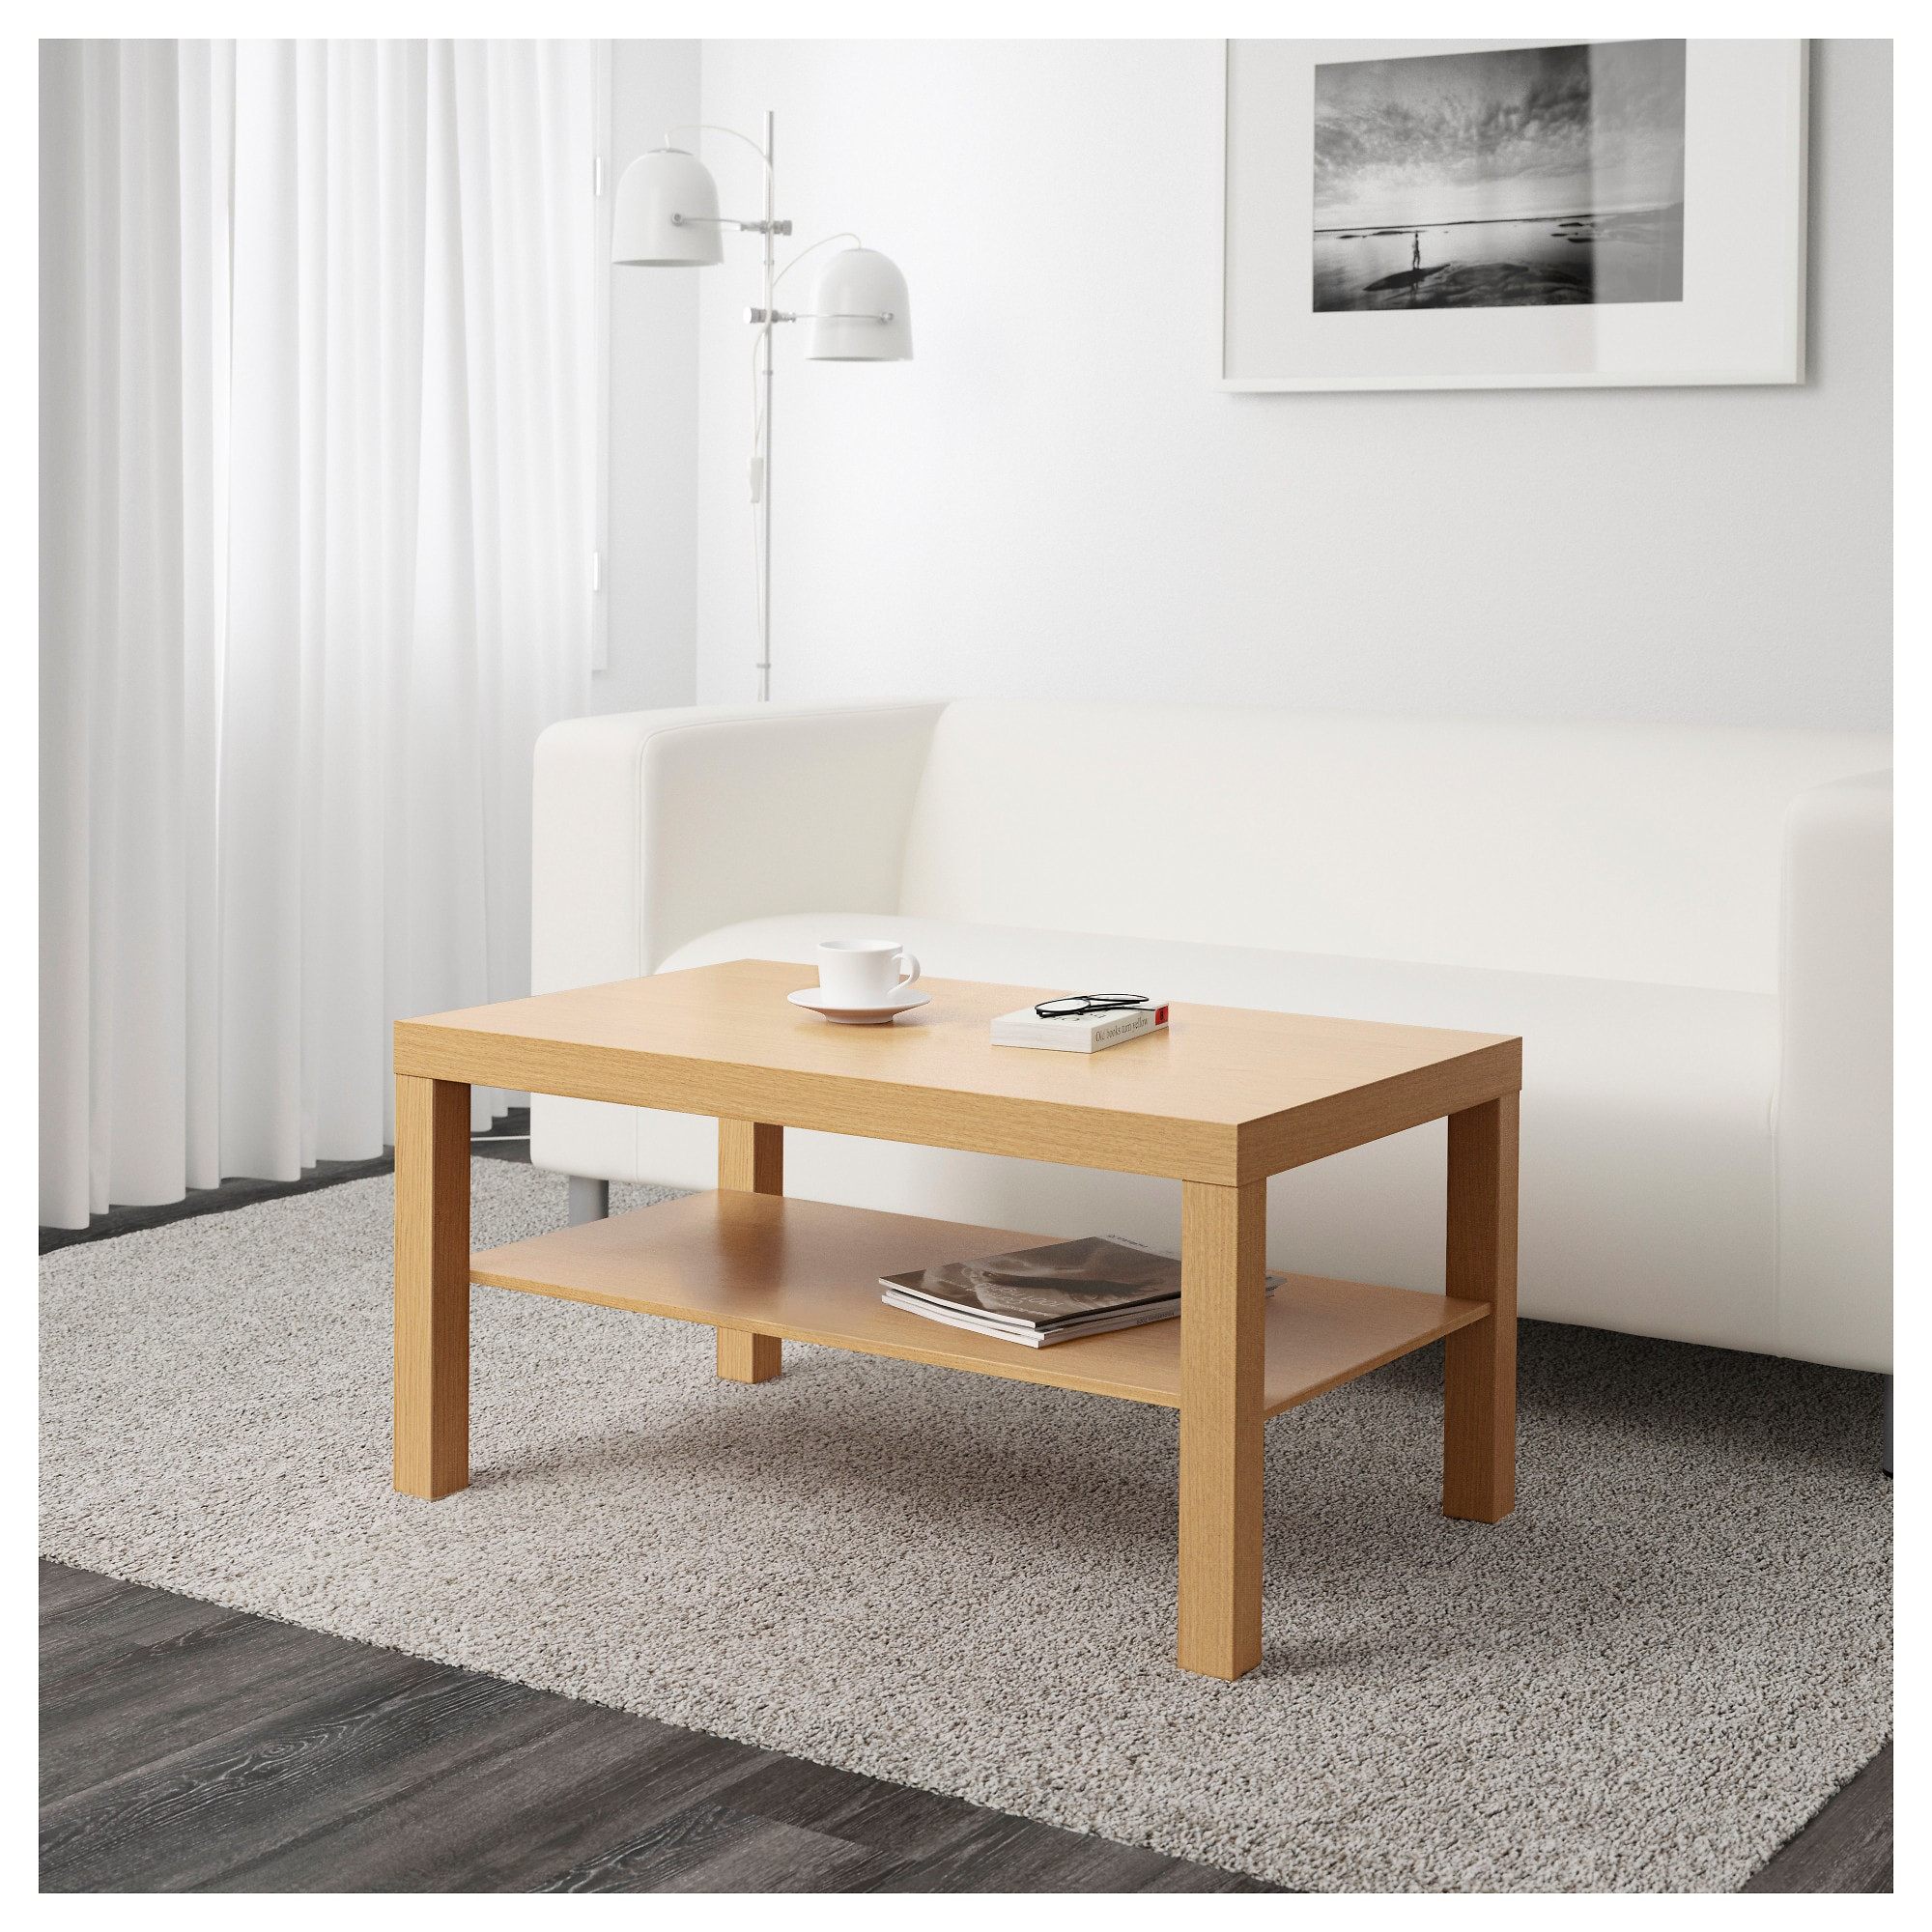 Best ideas about Lack Coffee Table . Save or Pin LACK Coffee table Oak effect 90 x 55 cm IKEA Now.